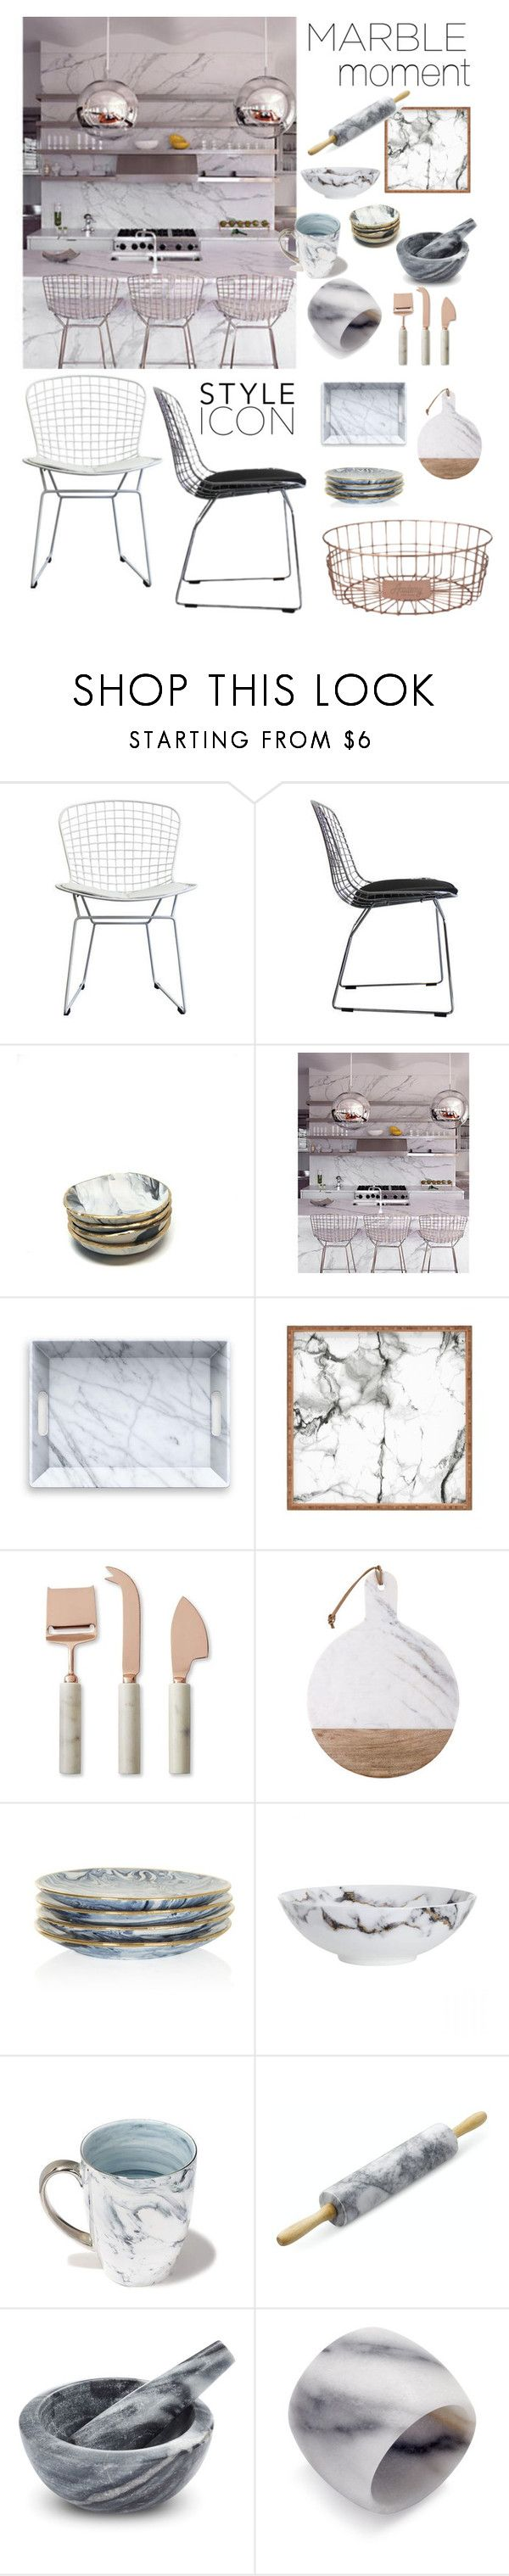 """Marble Moment #marblehome #kitchen #cool #marble #mediterranean #style #interiors #mesh #chairs #metal #marble #palazzo #style"" by cielshopinteriors ❤ liked on Polyvore featuring interior, interiors, interior design, home, home decor, interior decorating, Ciel, DENY Designs, Williams-Sonoma and Prouna"